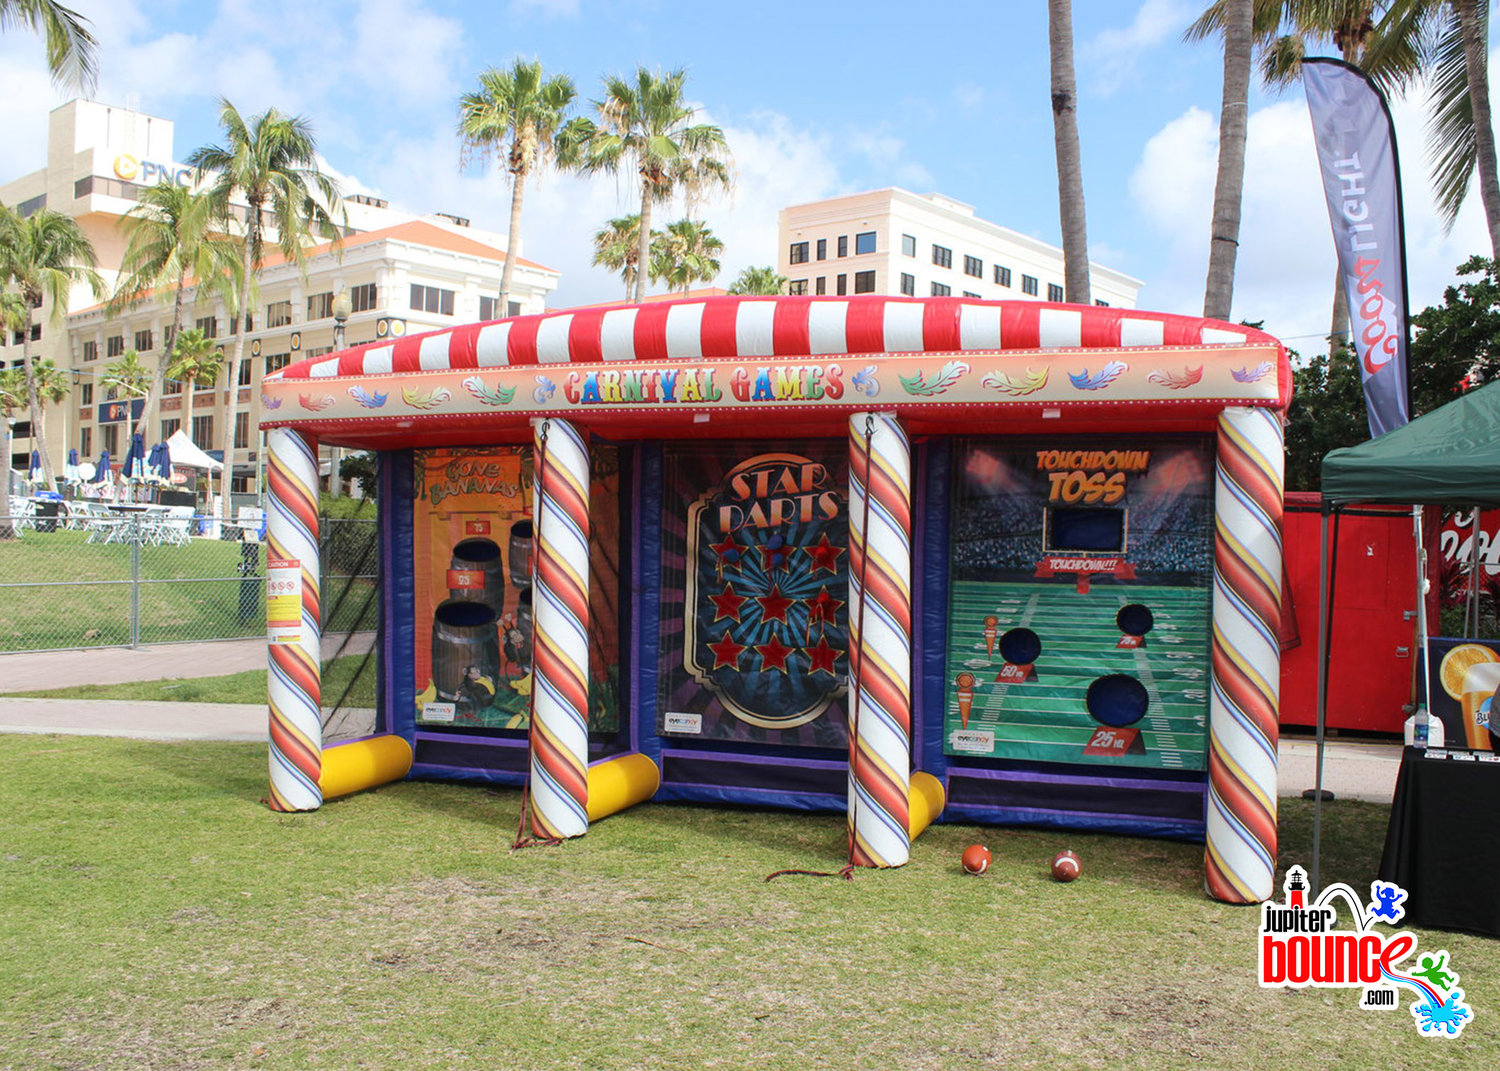 inflatablecarnival-jupiterbouncehouse-westpalmbounec-sportsgames-jupiterbirthdayparty-waterslides-magicians-silentdisco.jpg